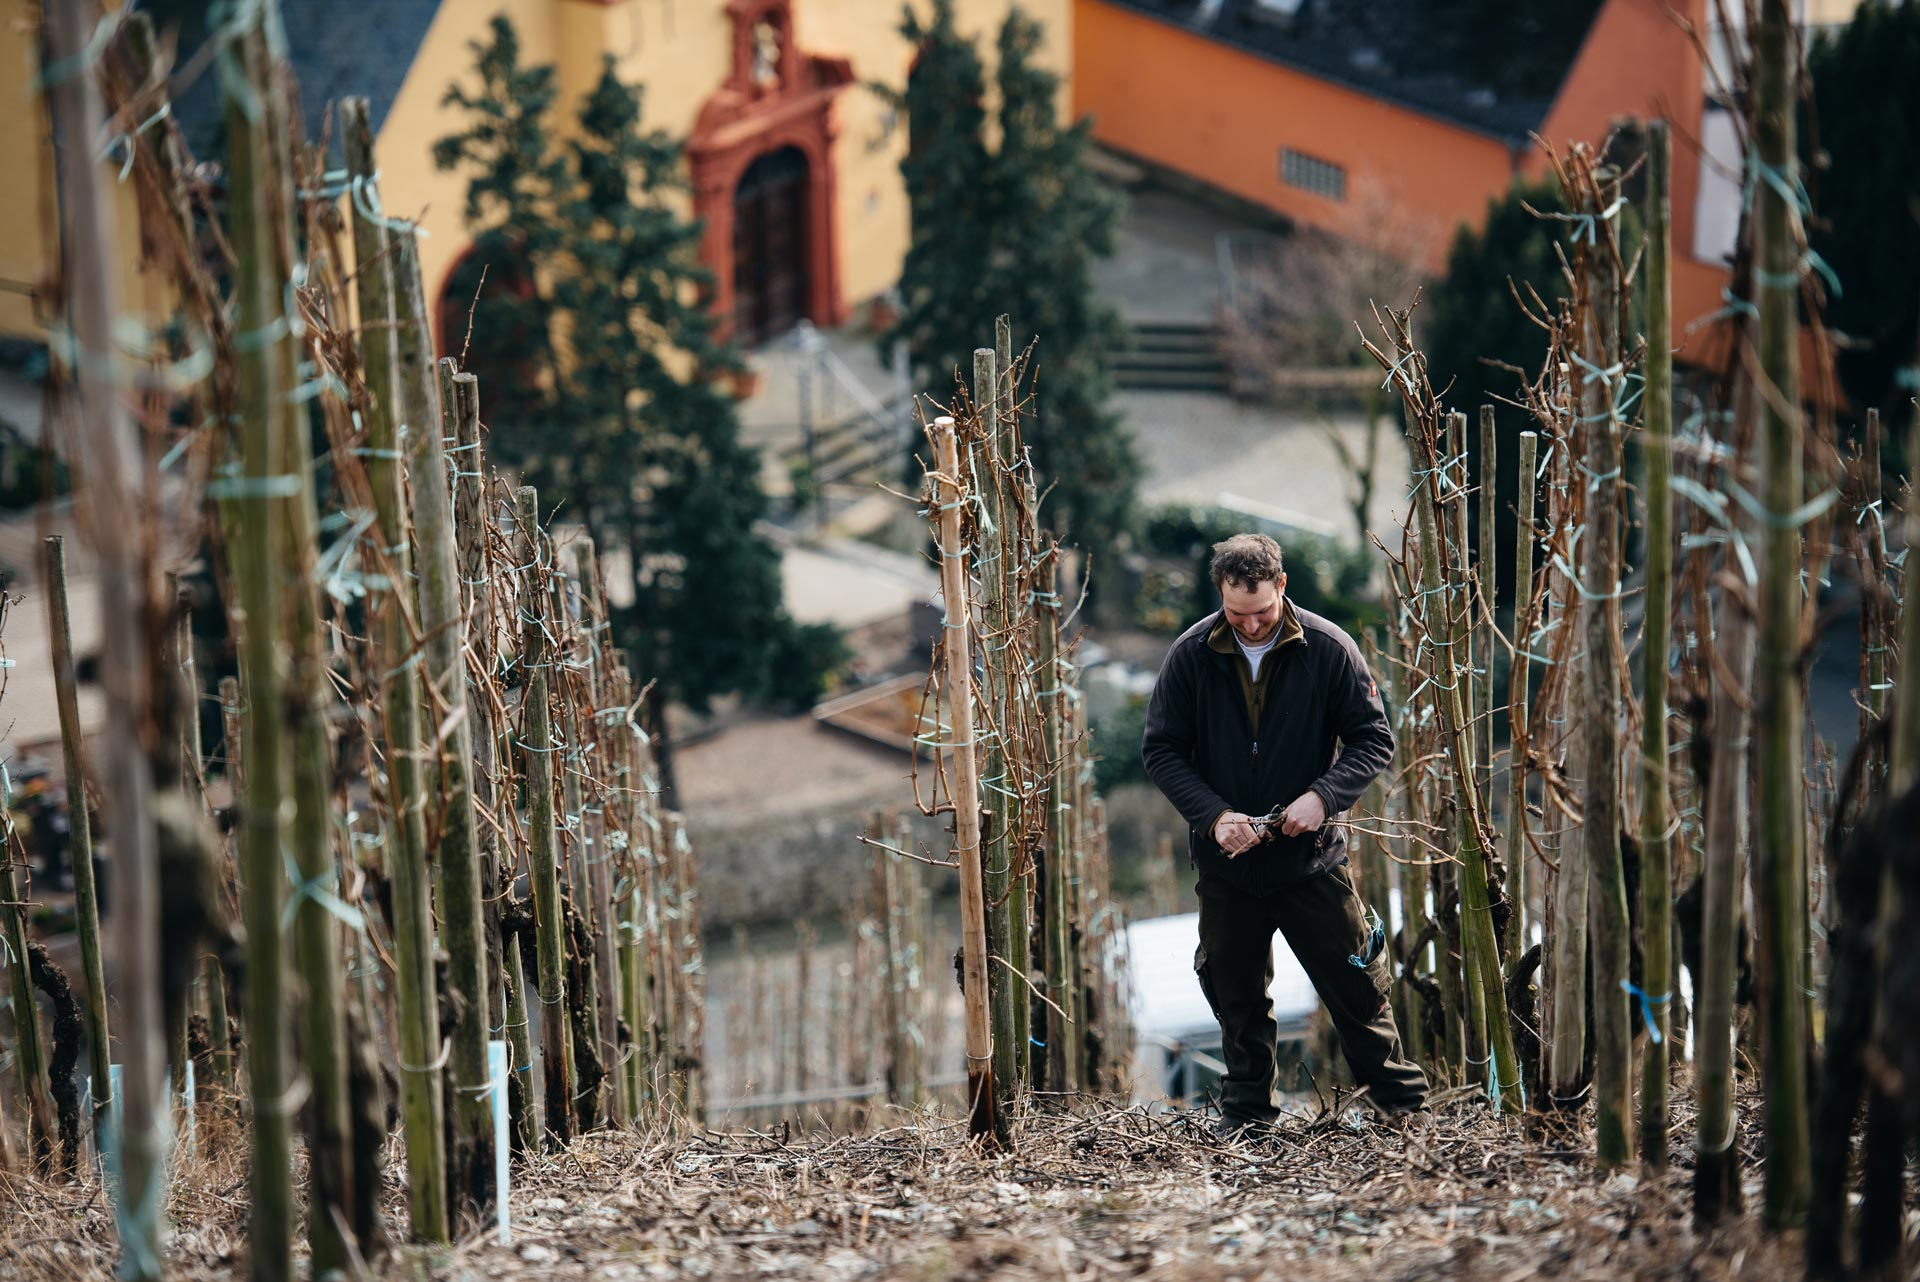 Taille d'hiver, Selbach Oster, Mosel, Germany